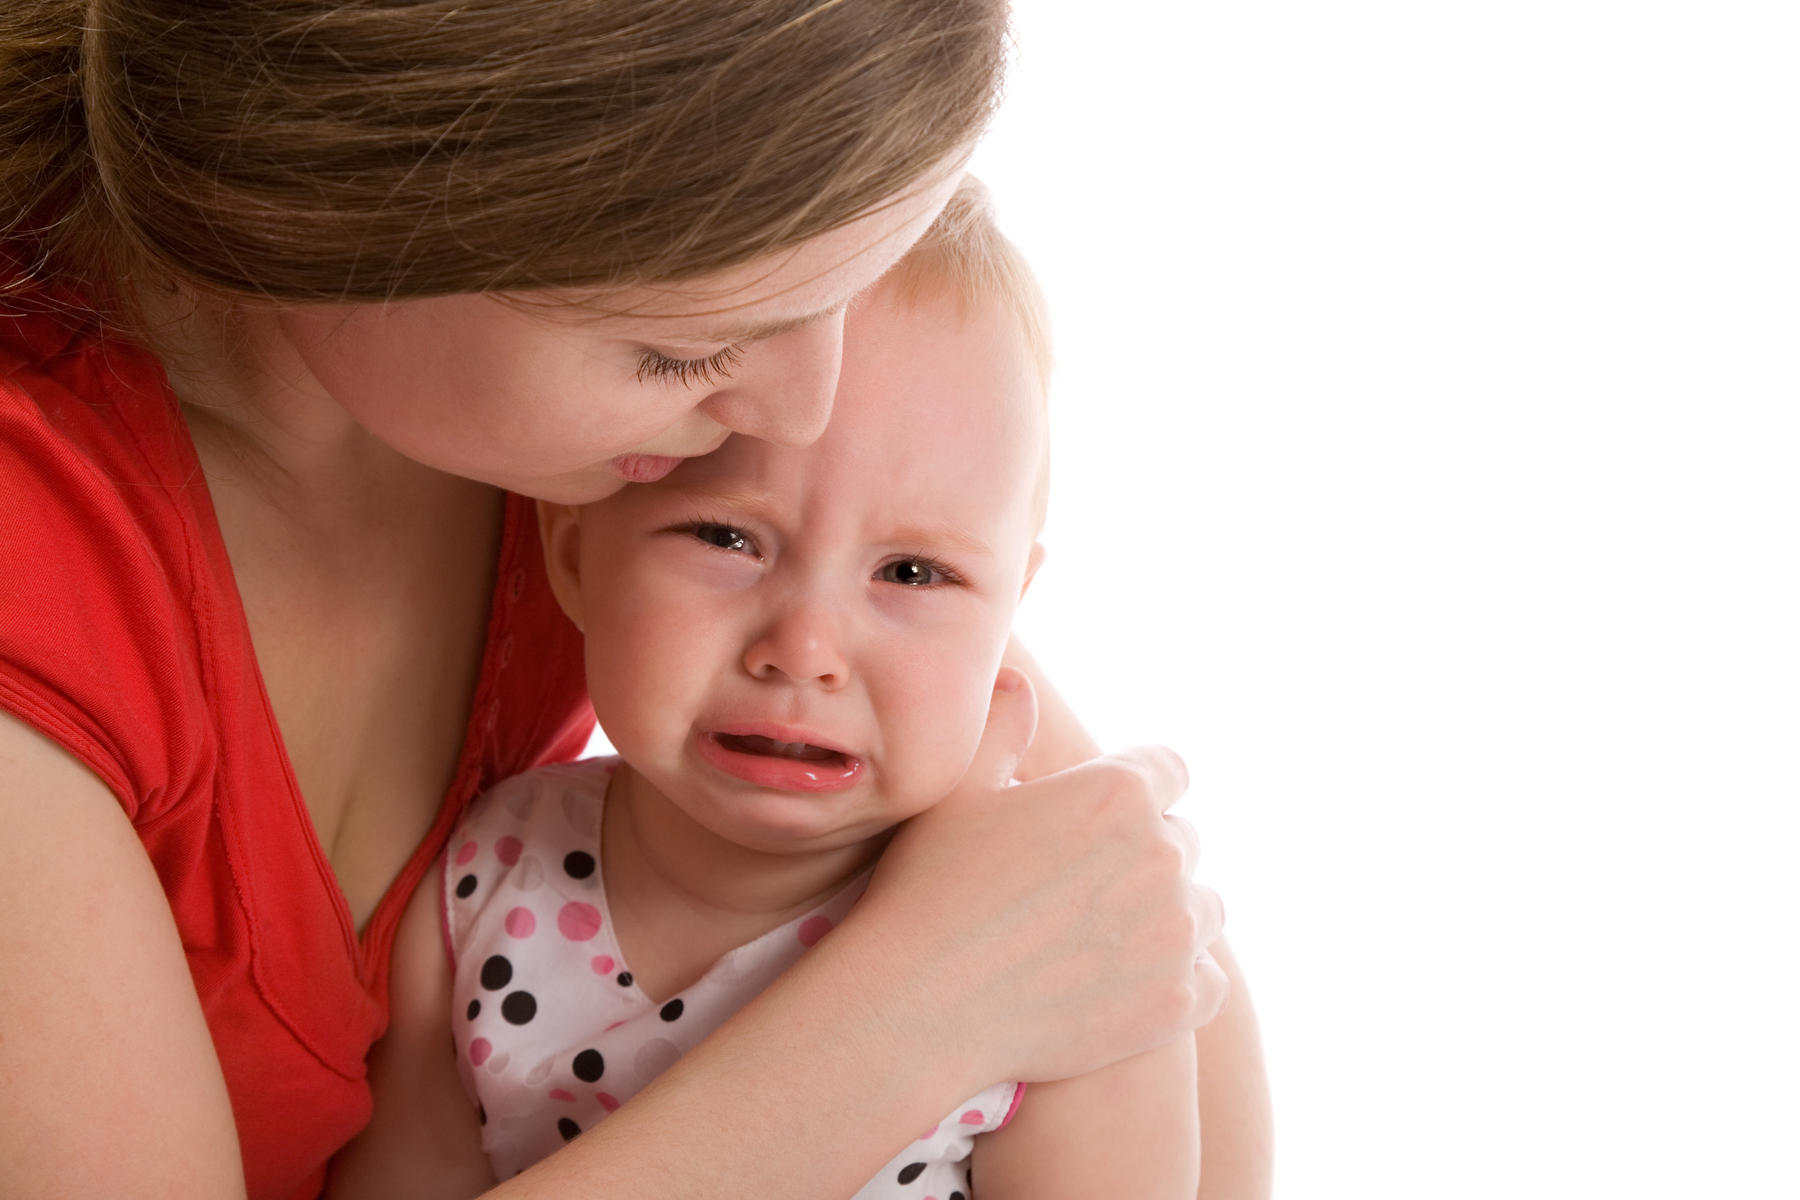 Mom soothing crying baby